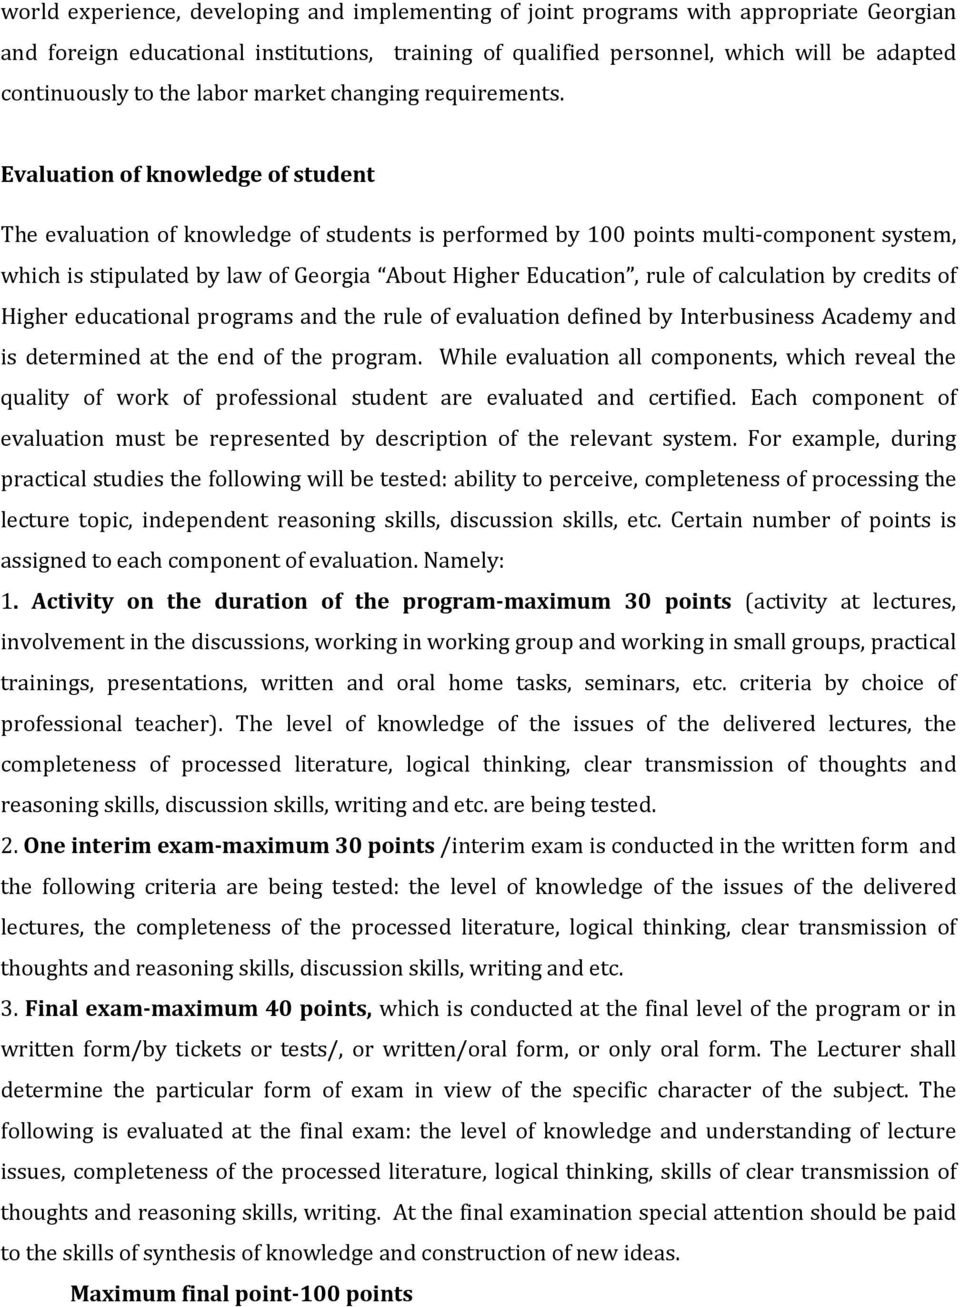 Evaluation of knowledge of student The evaluation of knowledge of students is performed by 100 points multi component system, which is stipulated by law of Georgia About Higher Education, rule of